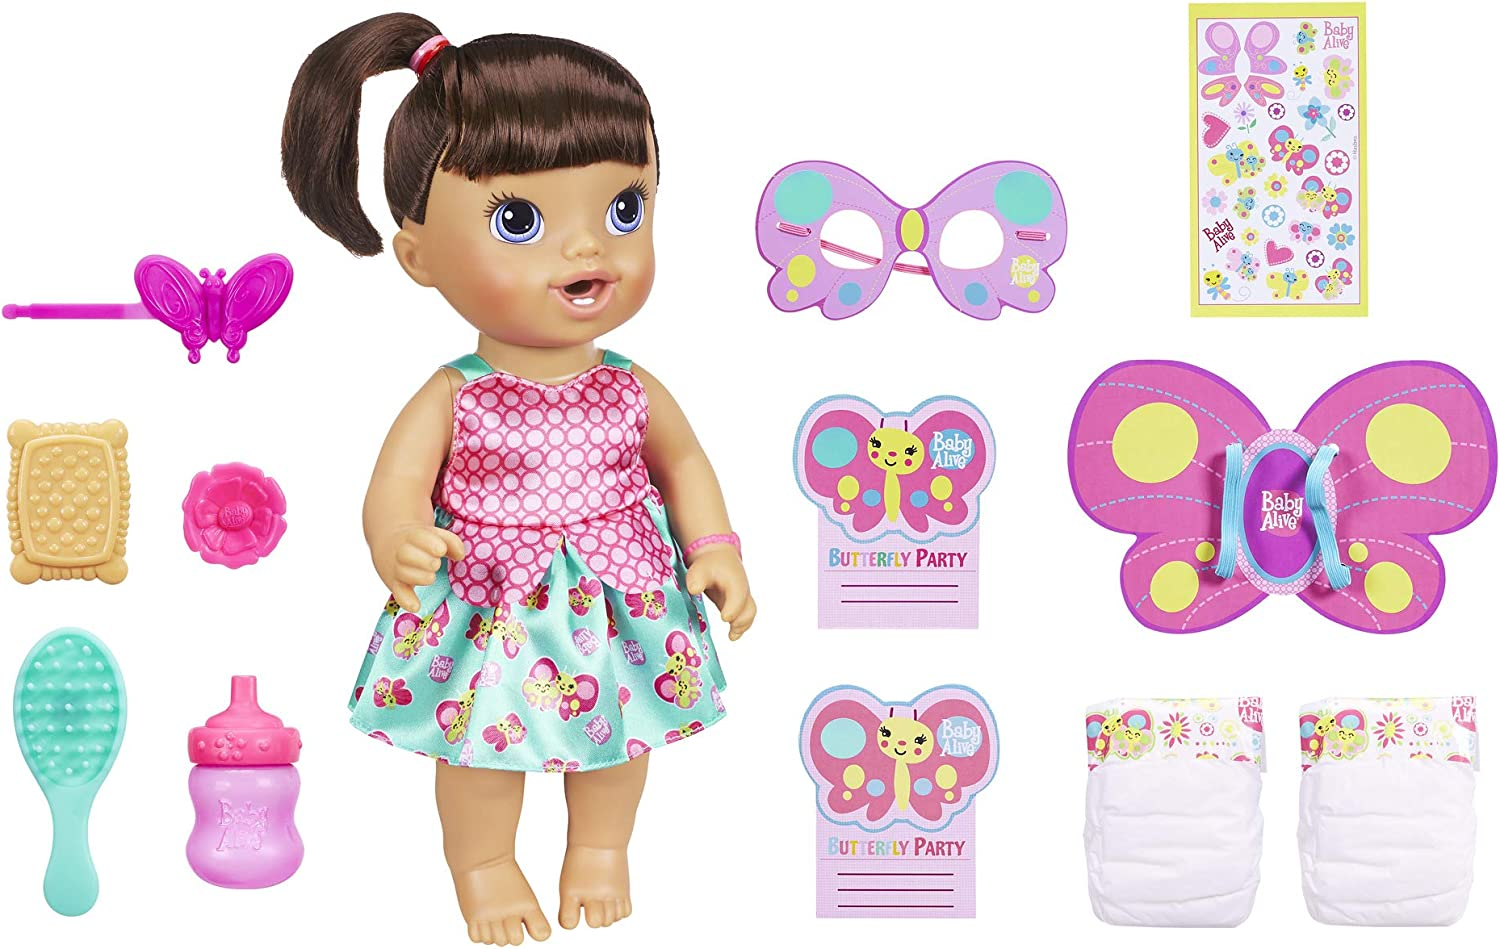 bambino Alive Butterfly Party bambola Bcorrereette by bambino Alive